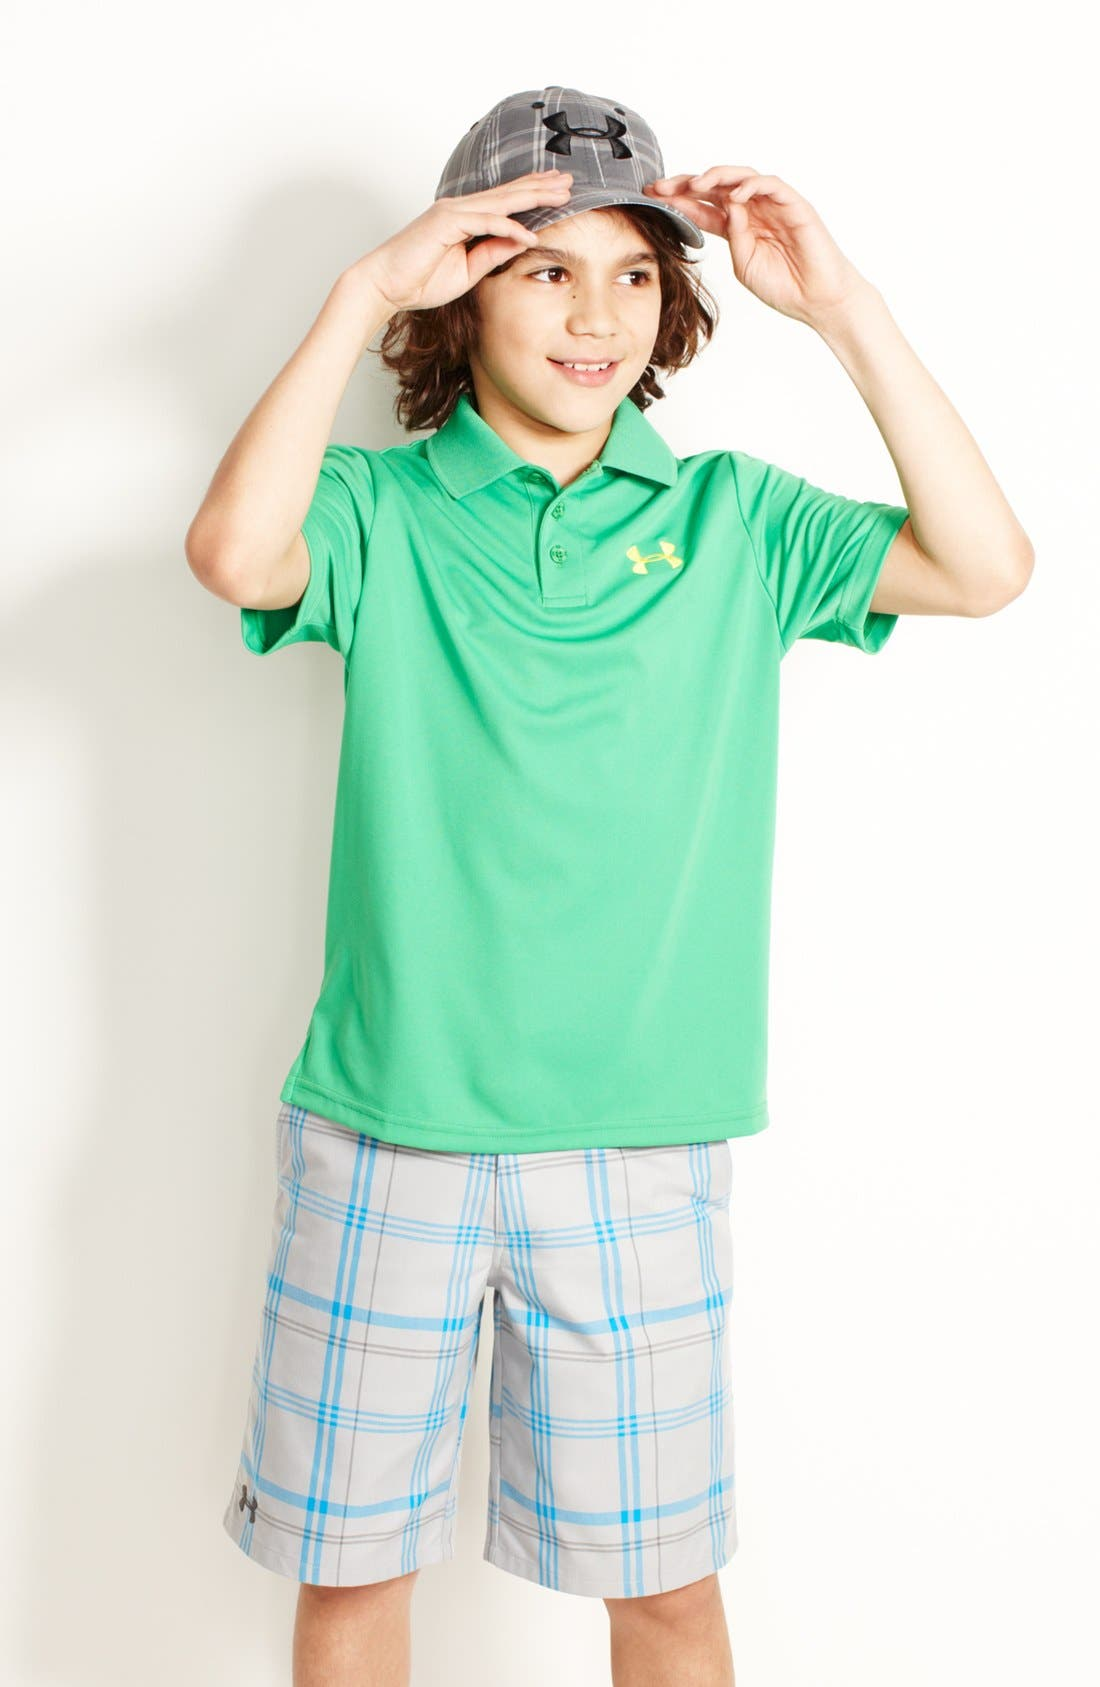 Main Image - Under Armour Polo & Shorts